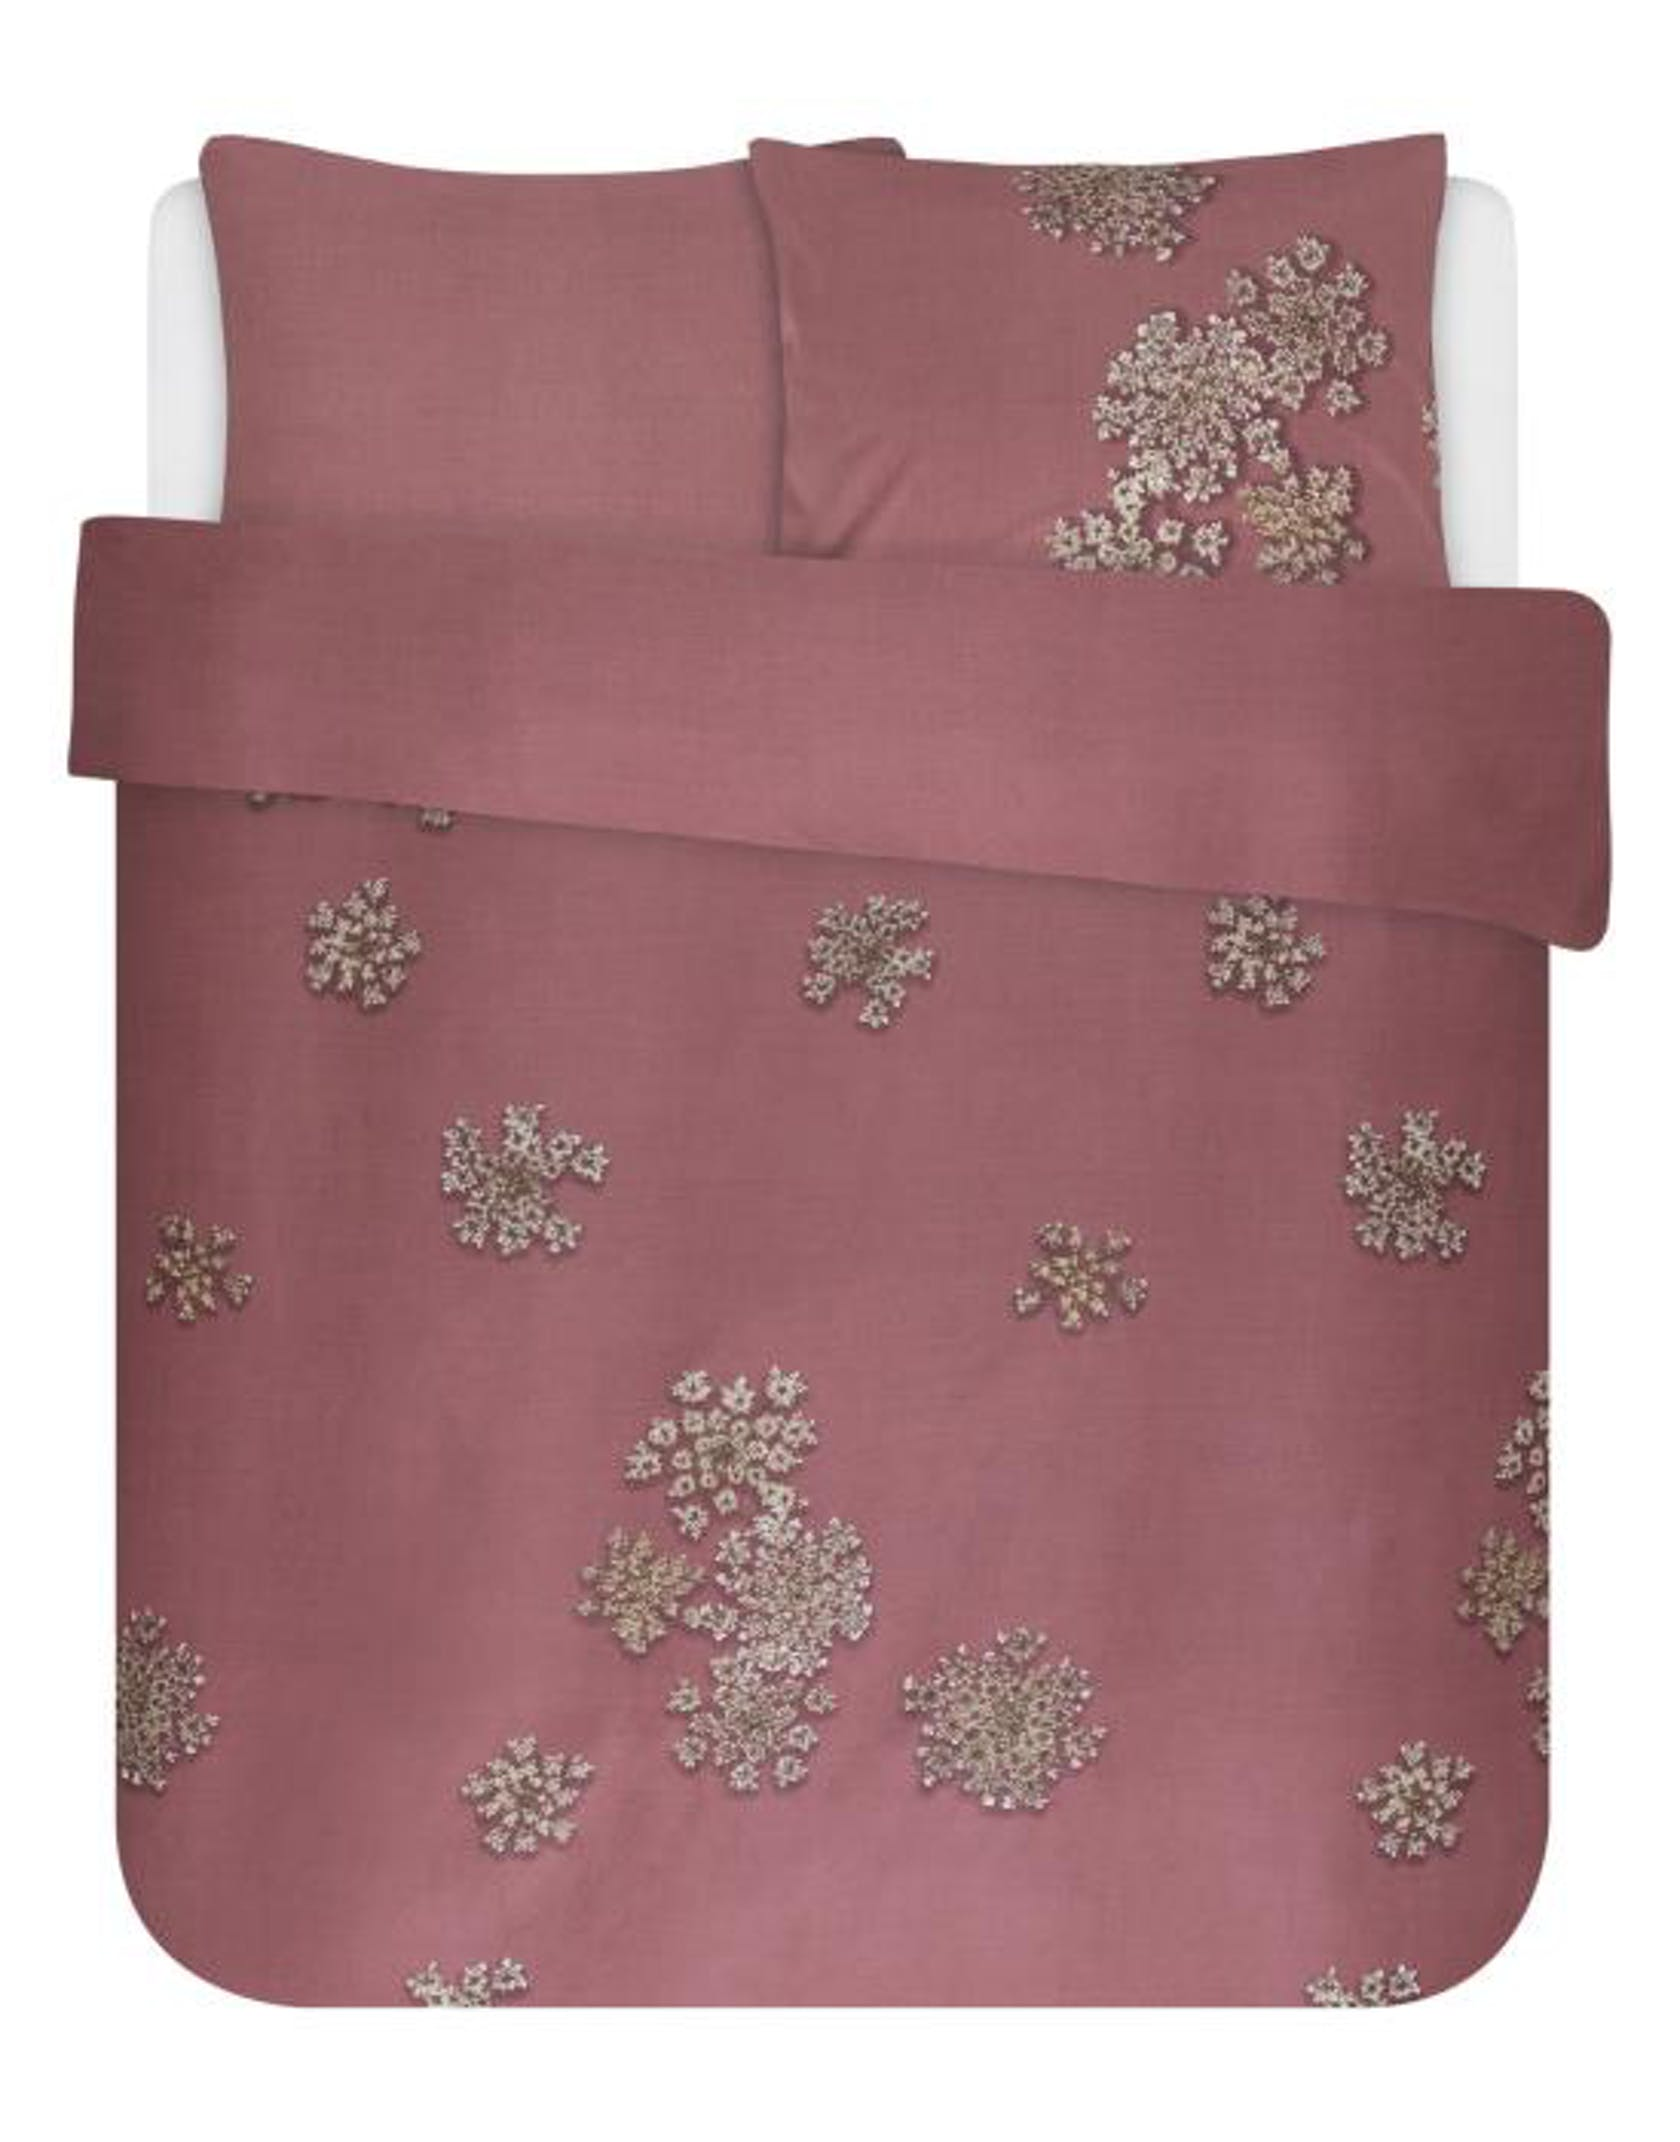 Essenza Lauren Duvet cover Dusty Rose